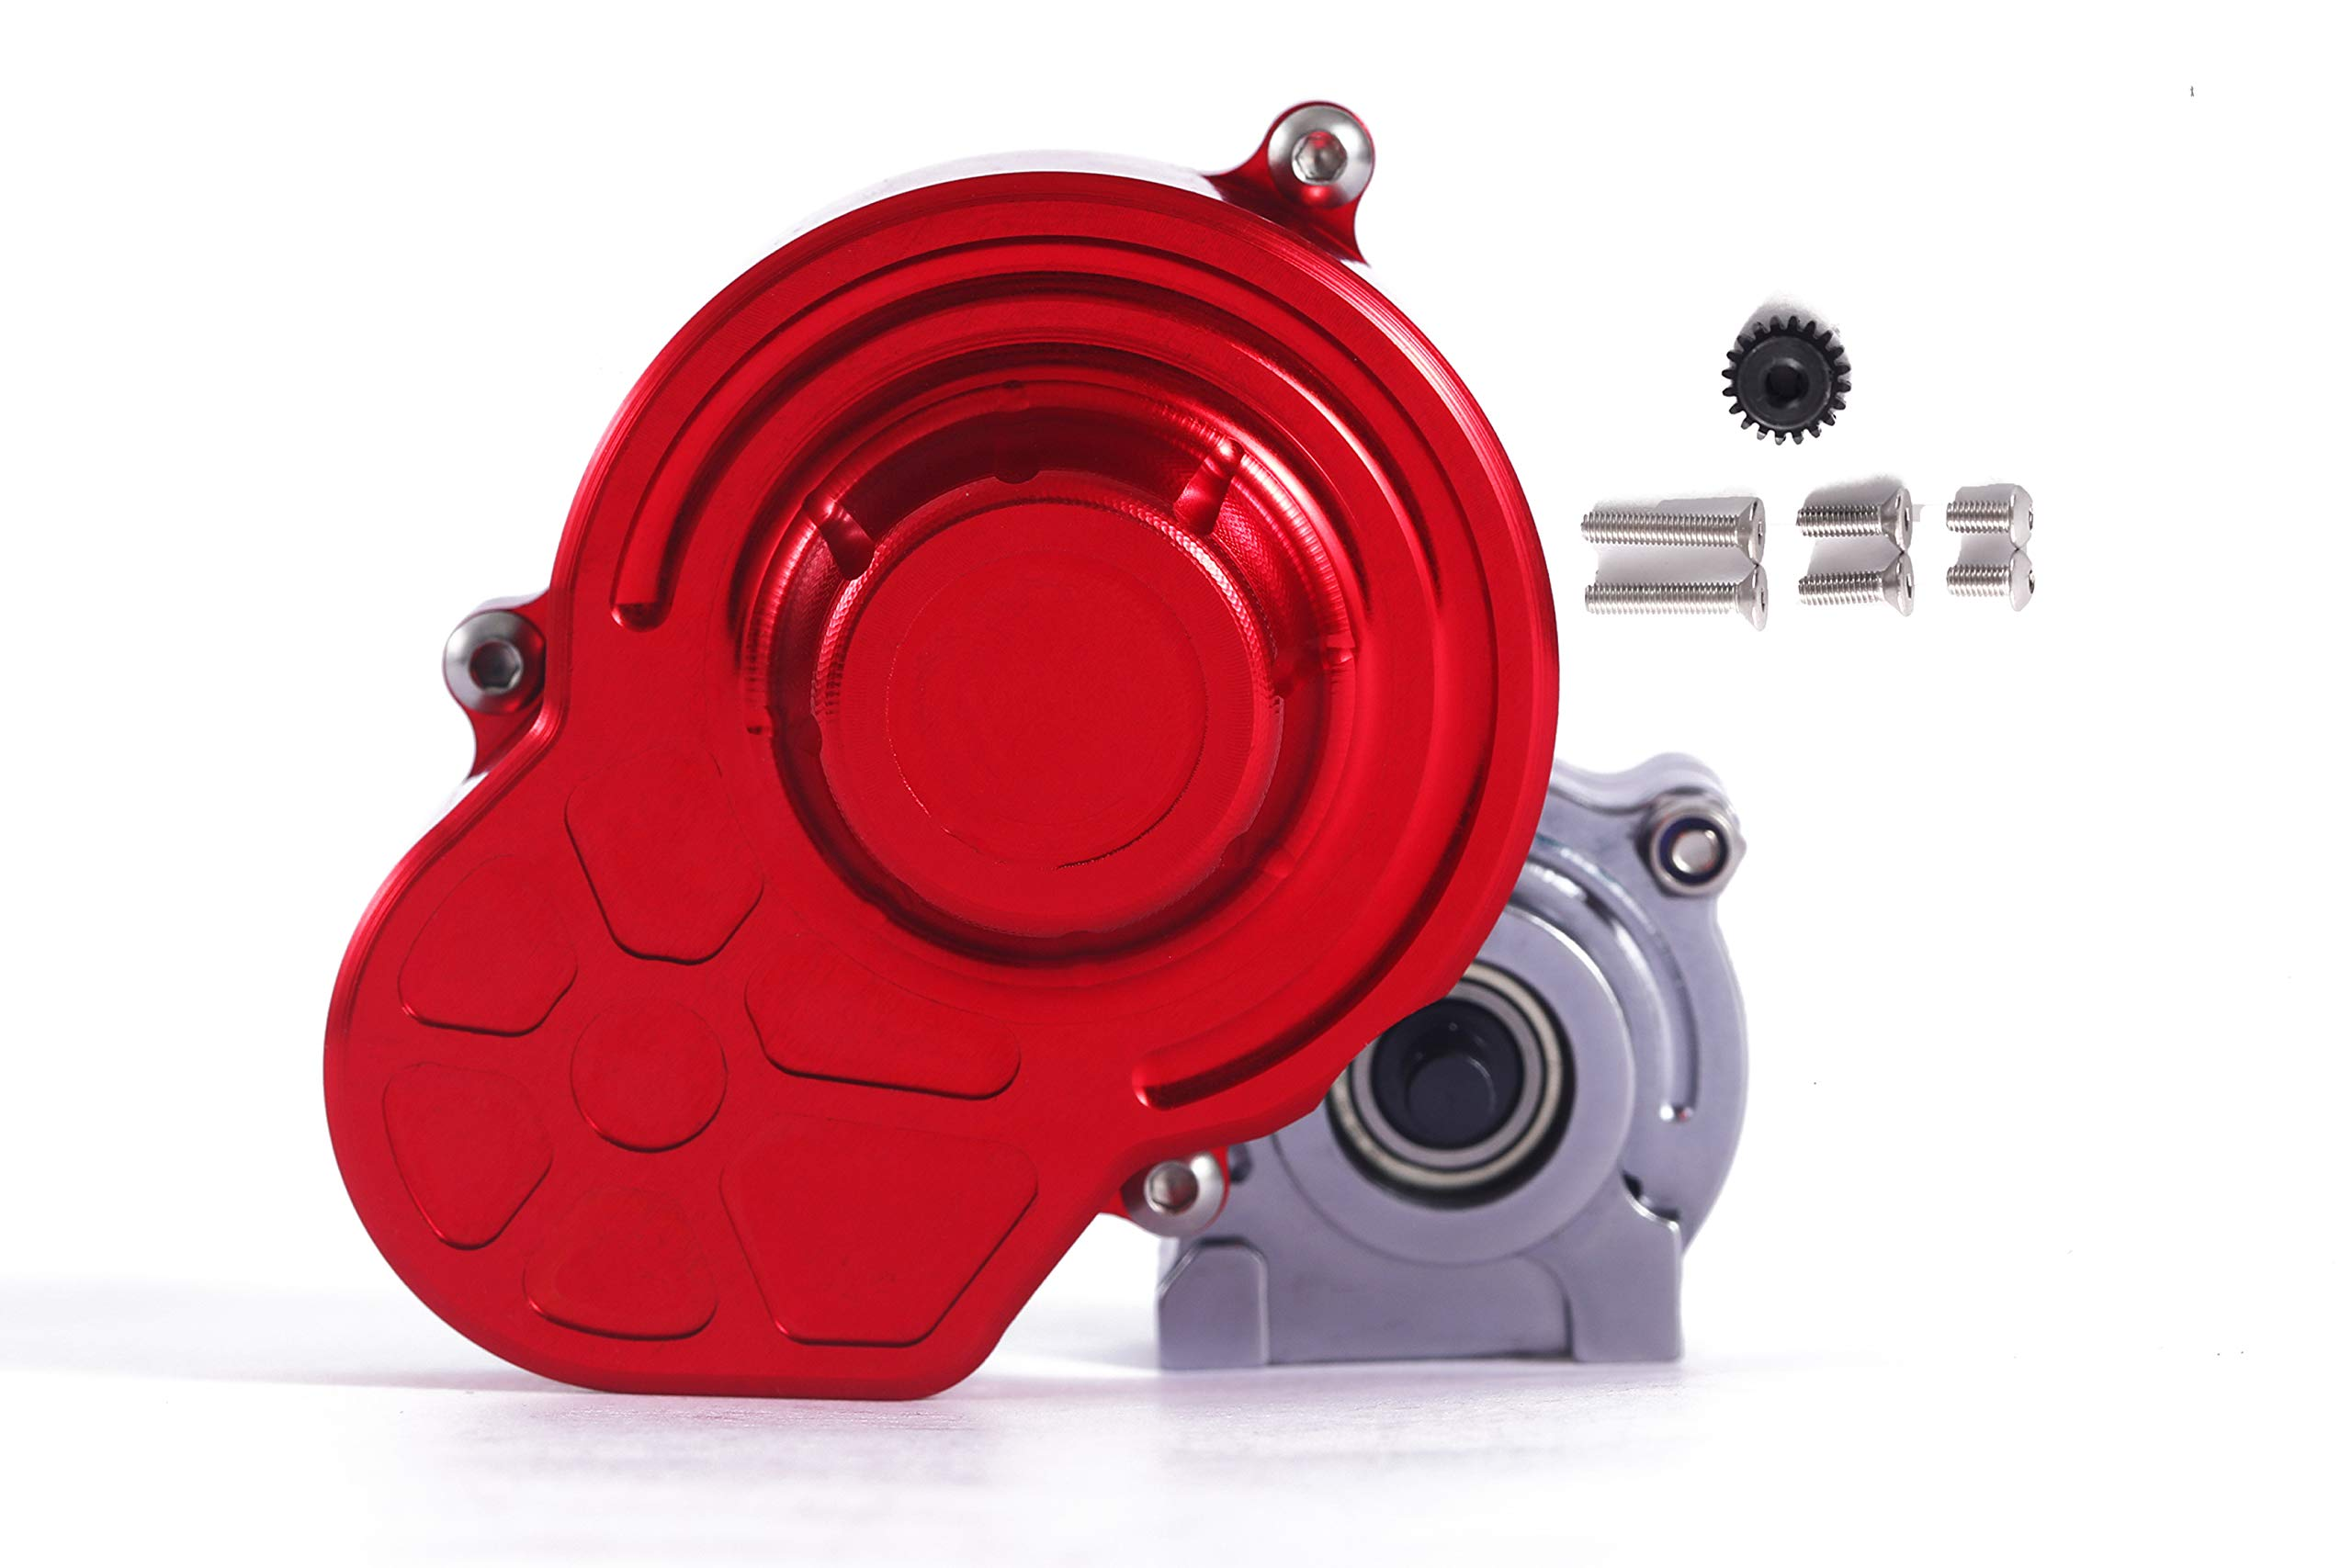 RZXYL 1/10 RC Car Full Alloy Assembled Transmission Case Gearbox for Axial SCX10,Red